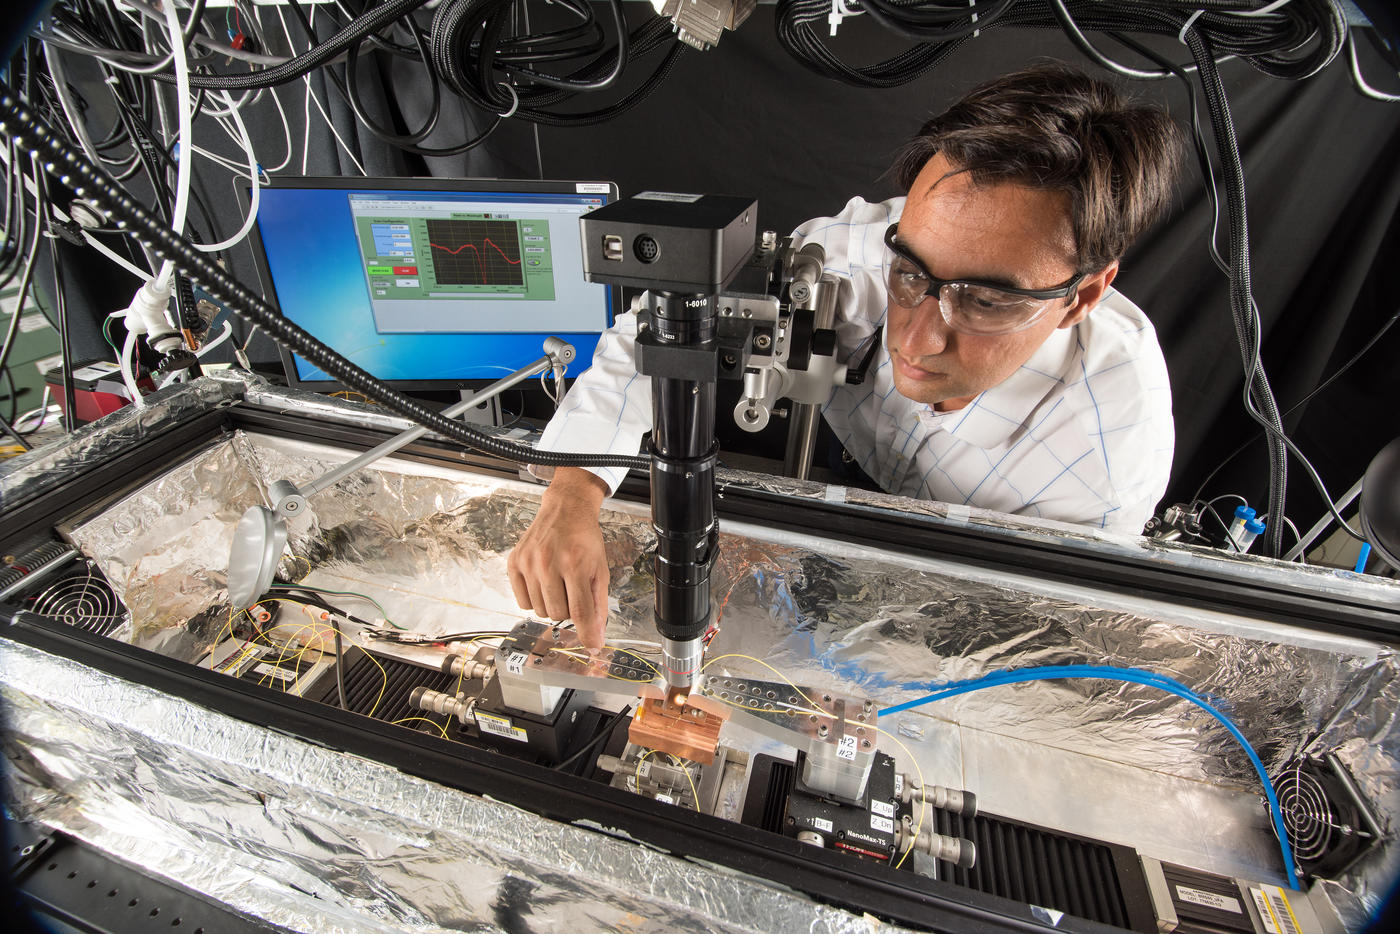 Scientist stands at a photonics optical probe station.